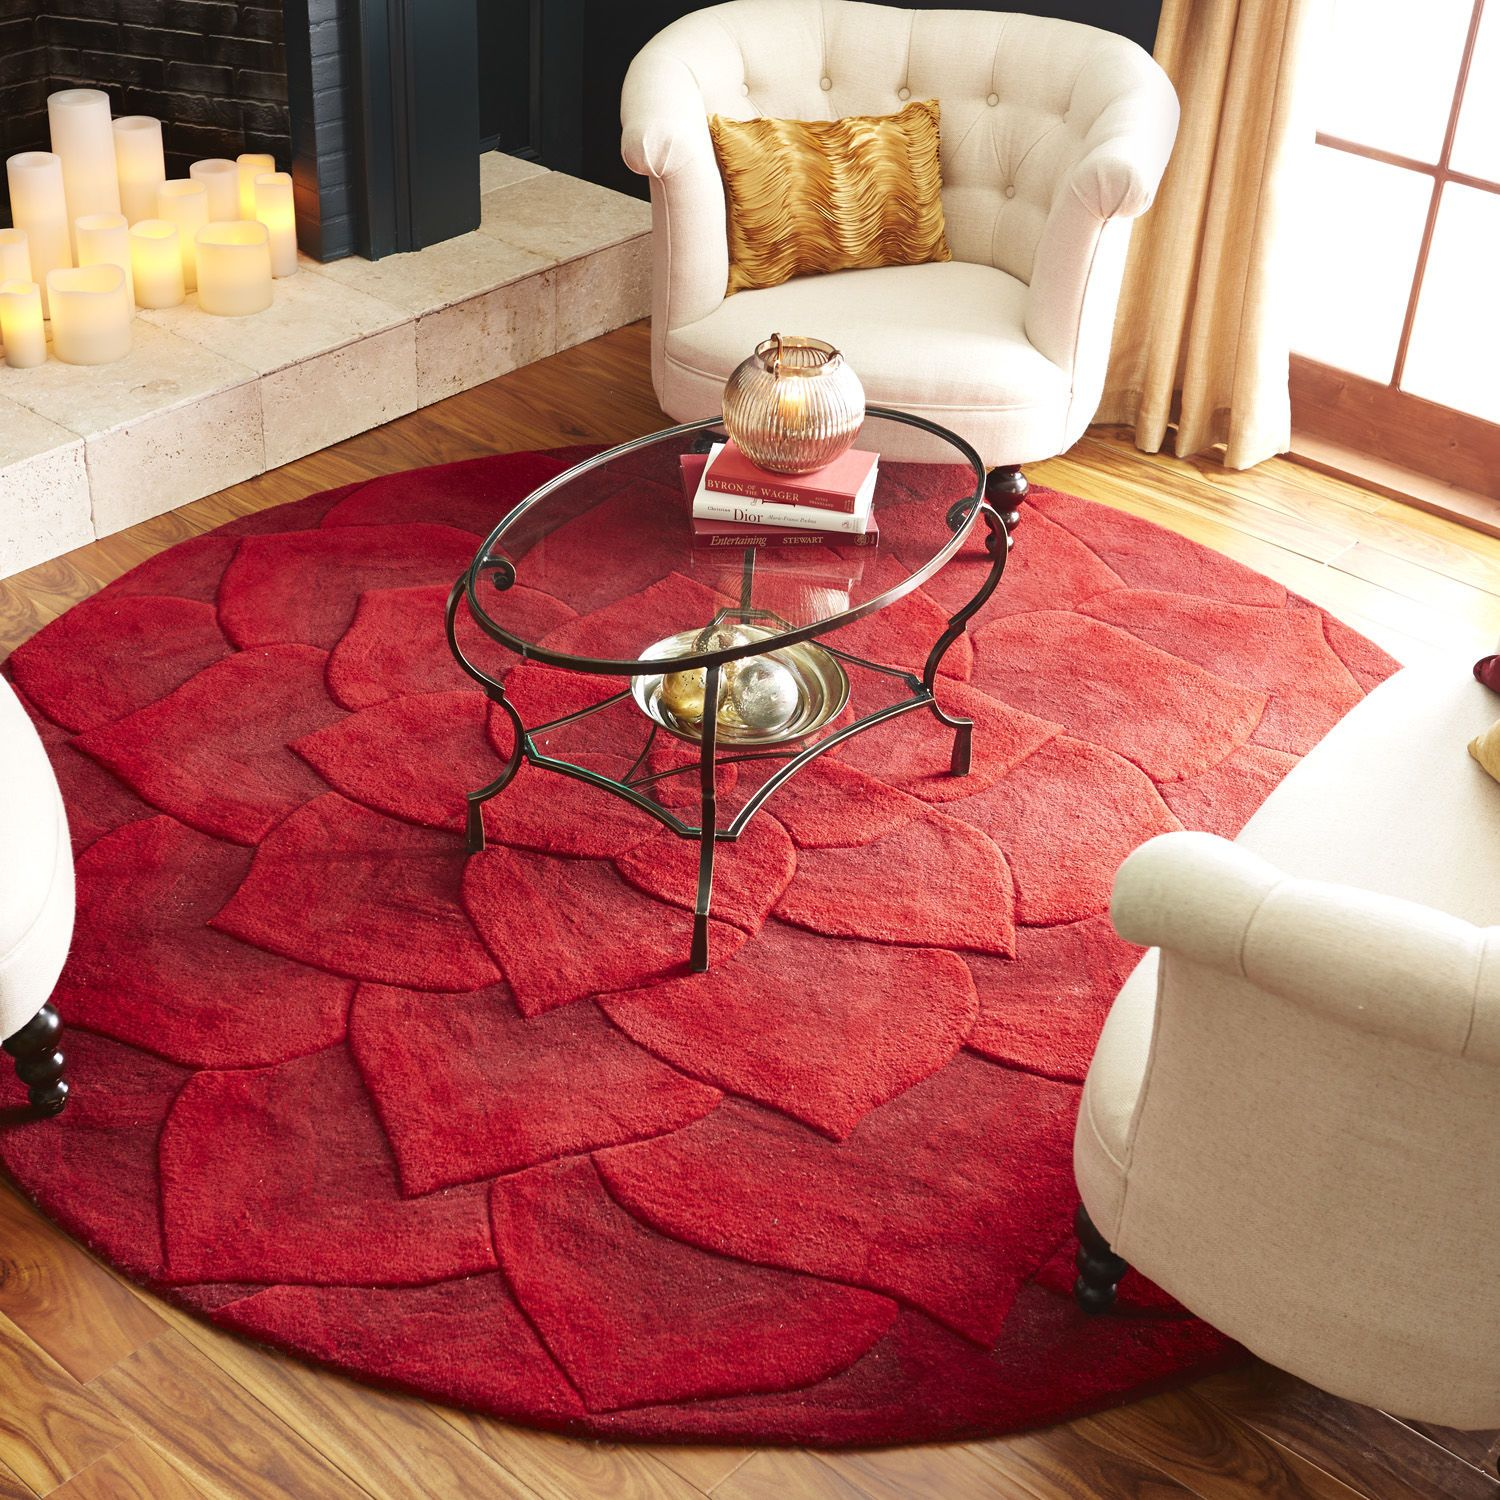 pier 1 living room rugs%0A Rose Tufted Round Rug  Red   Pier   Imports